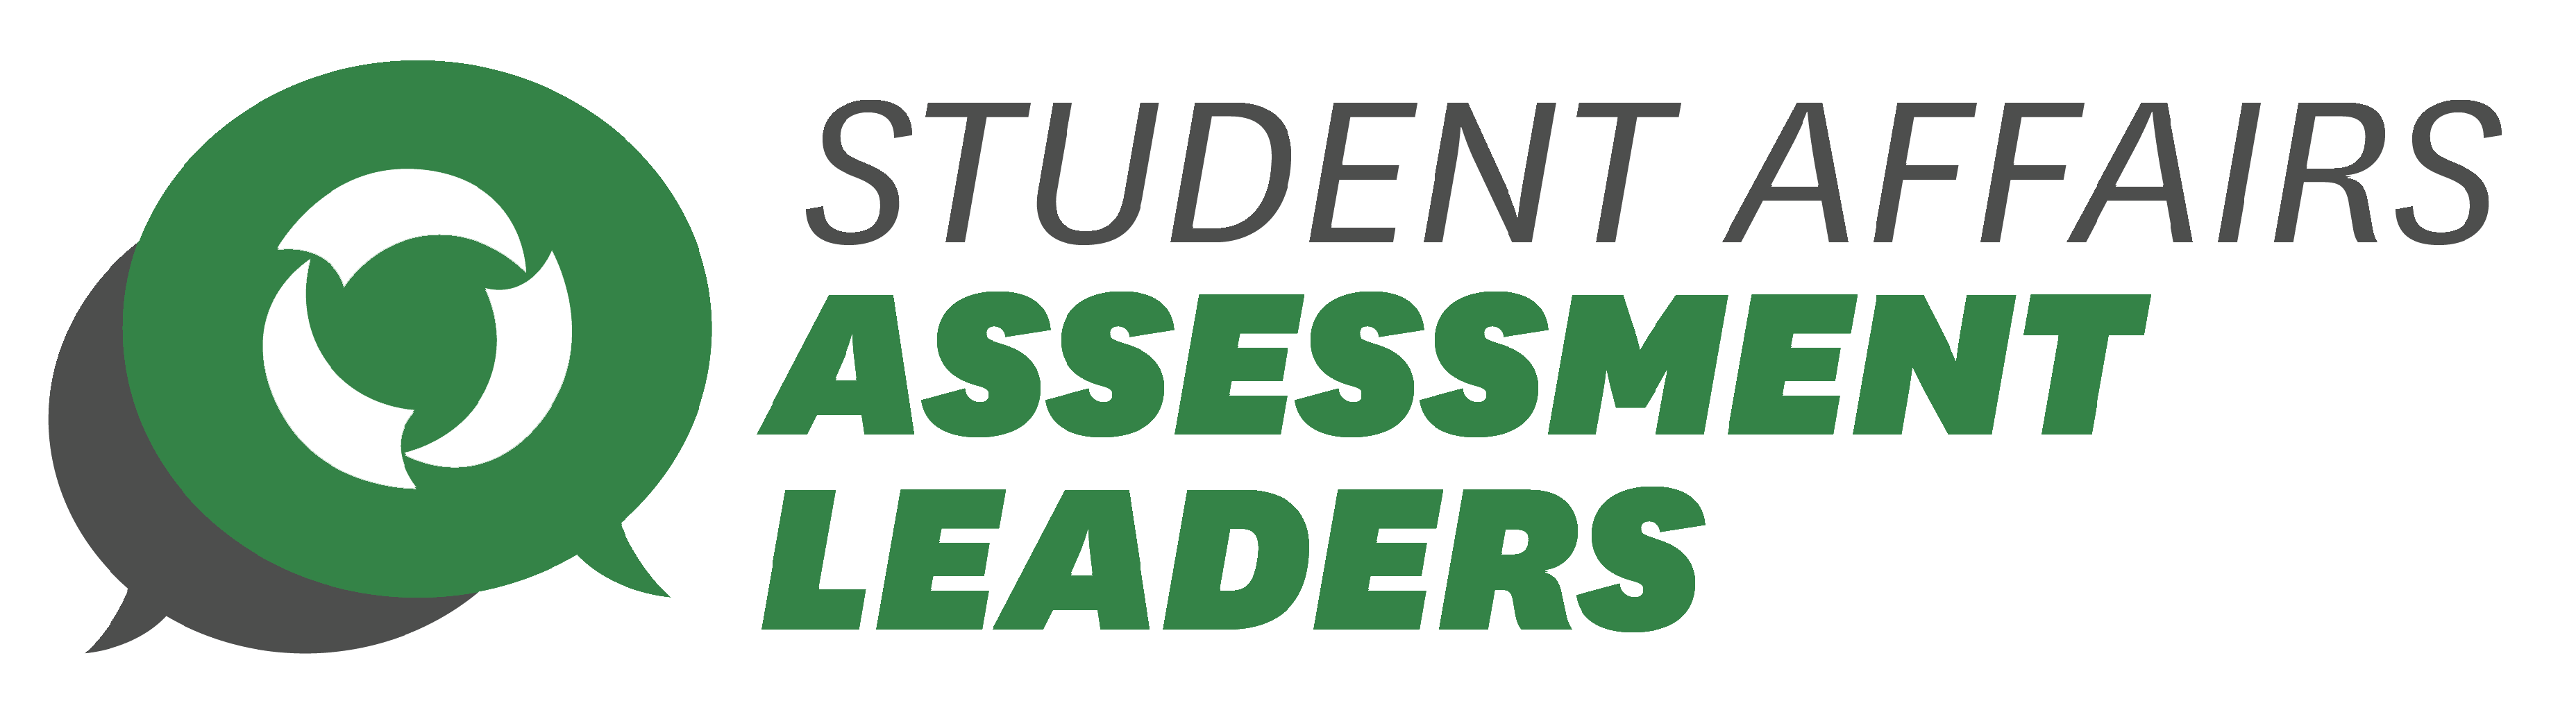 Student Affairs Assessment Leaders Logo